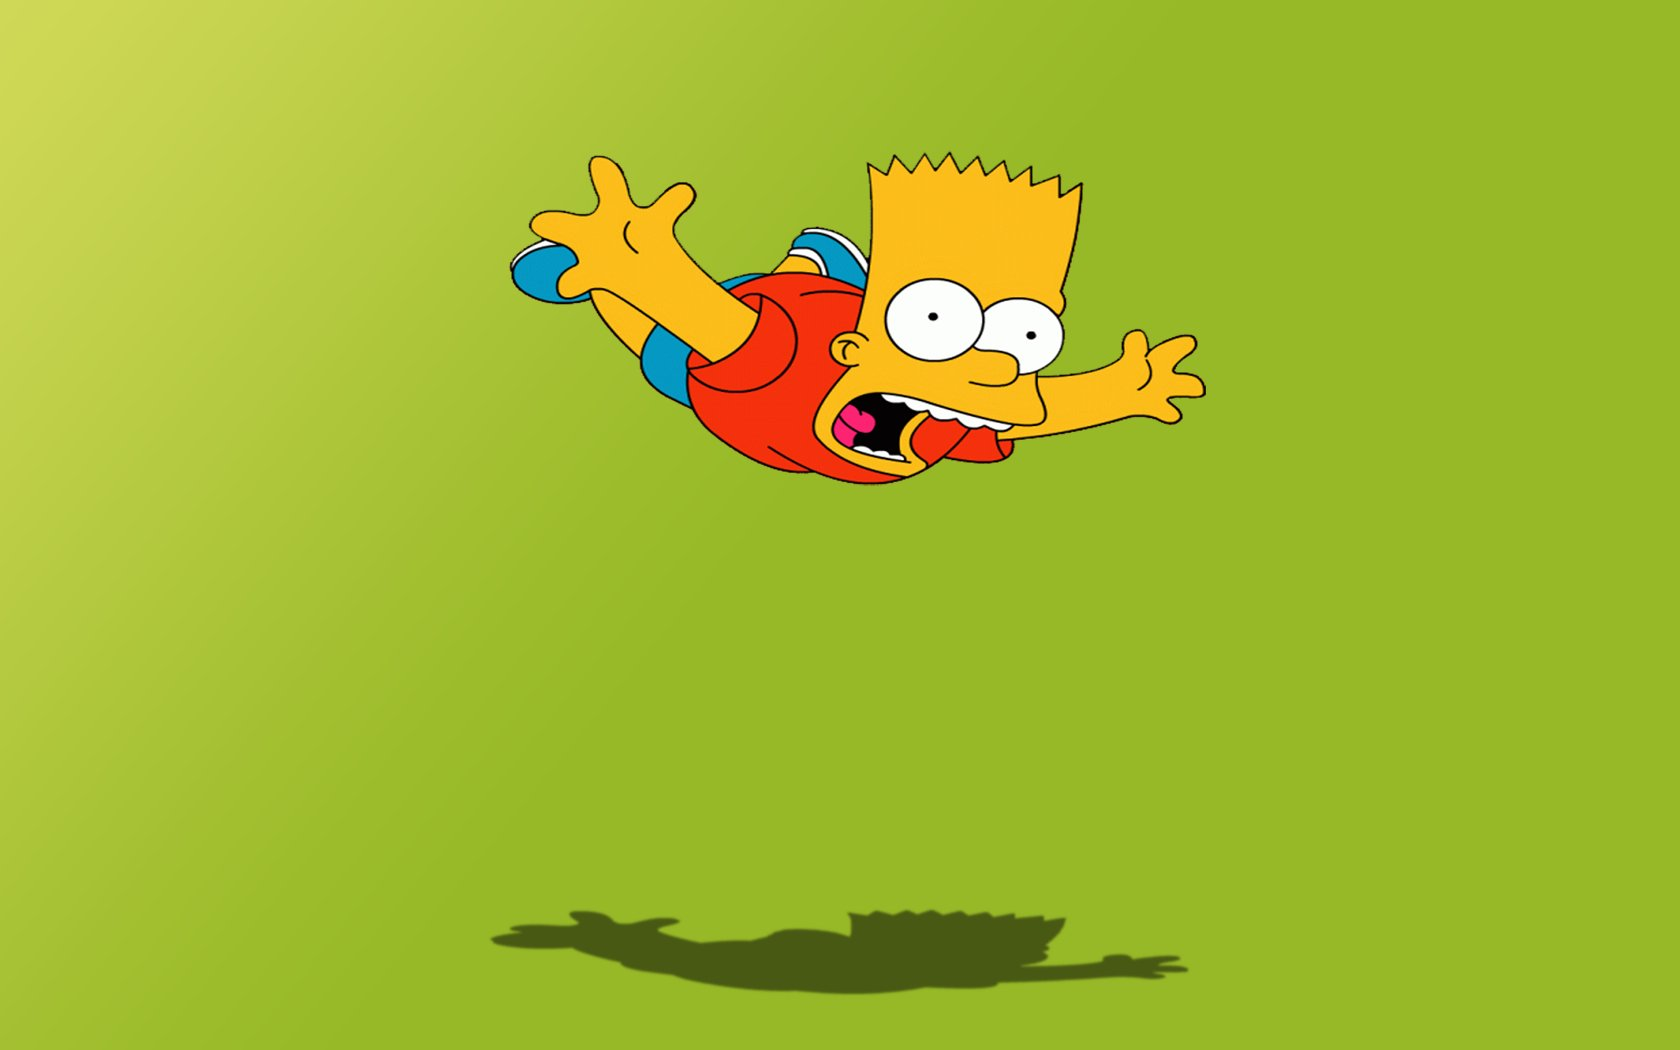 385 The Simpsons HD Wallpapers   Backgrounds - Wallpaper Abyss